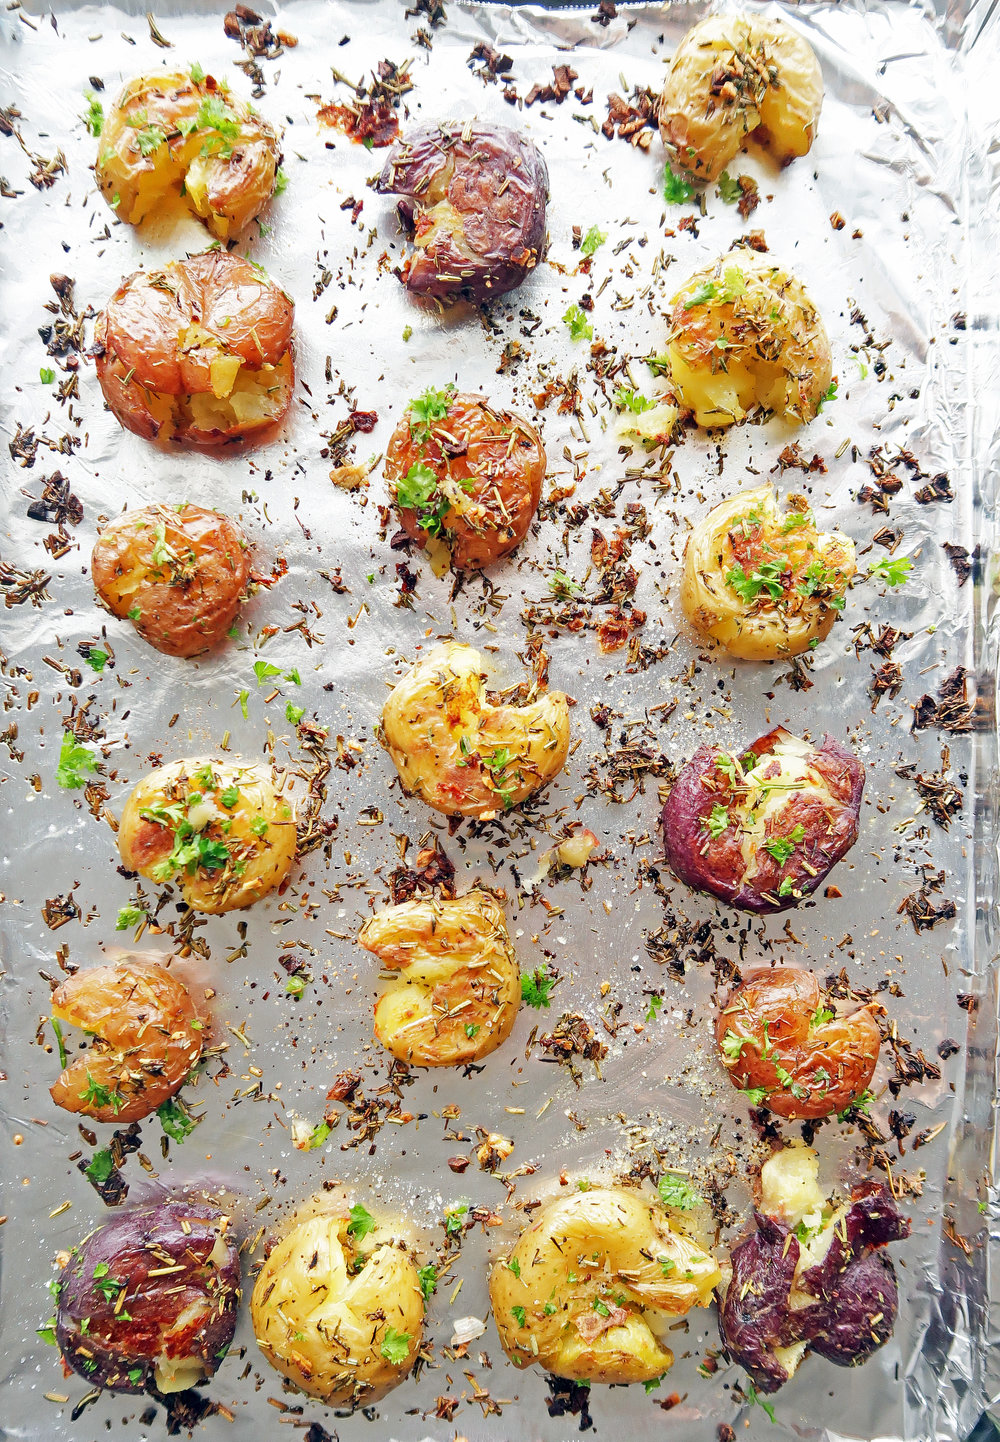 Crispy Garlic Smashed Baby Potatoes: An easy, gluten-free, vegan side dish with a crispy outside and fluffy inside. www.yayforfood.com